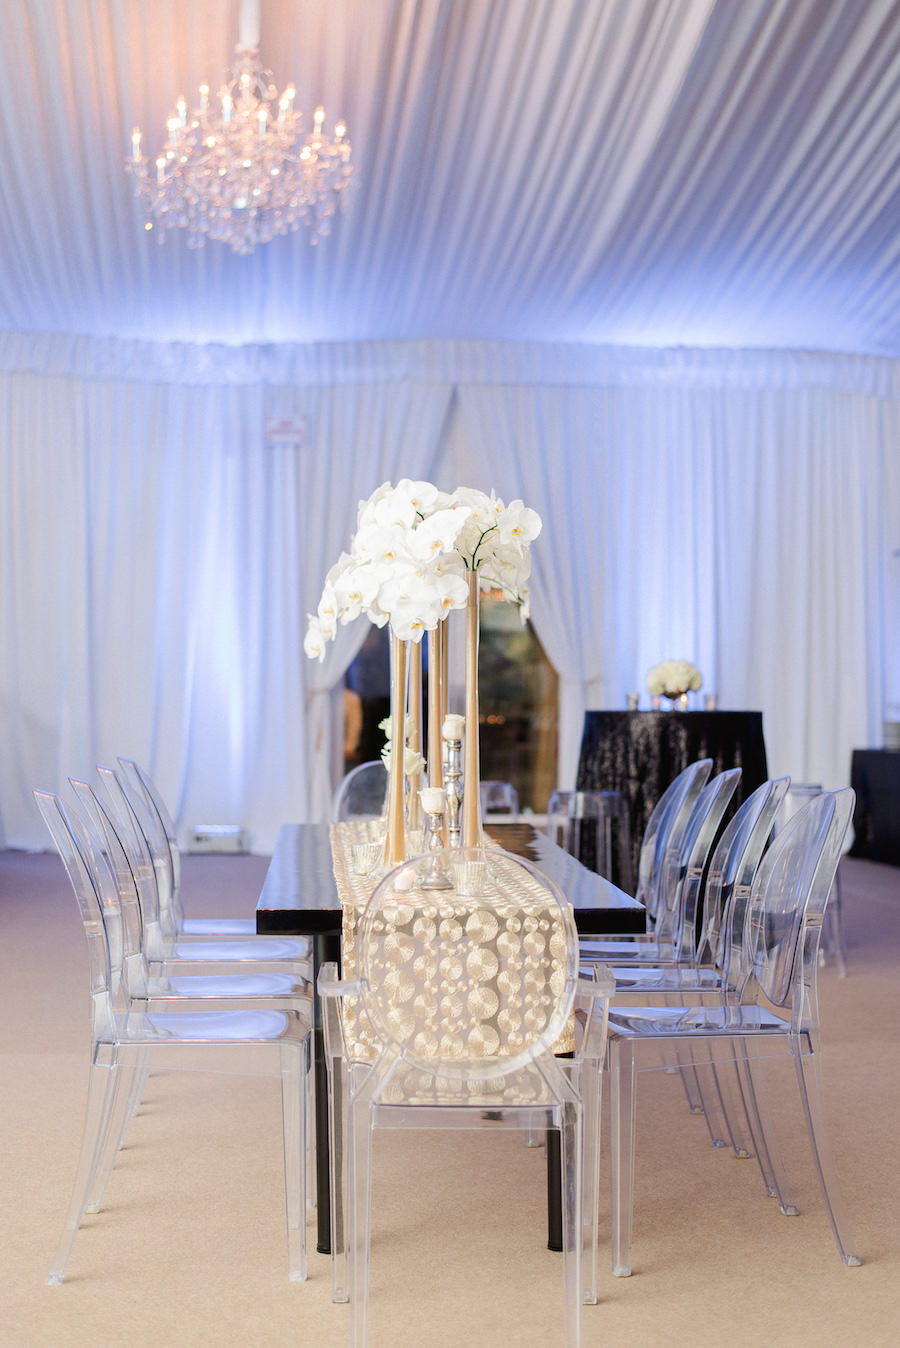 White and Gold Wedding Reception Décor with Tall, White Orchid Centerpieces on Gold Table Runners by Connie Duglin Linens and Lucite Chairs | Wedding Flowers by Andrea Layne Floral Design | Downtown Tampa Wedding Photographer Ailyn La Torre Photography